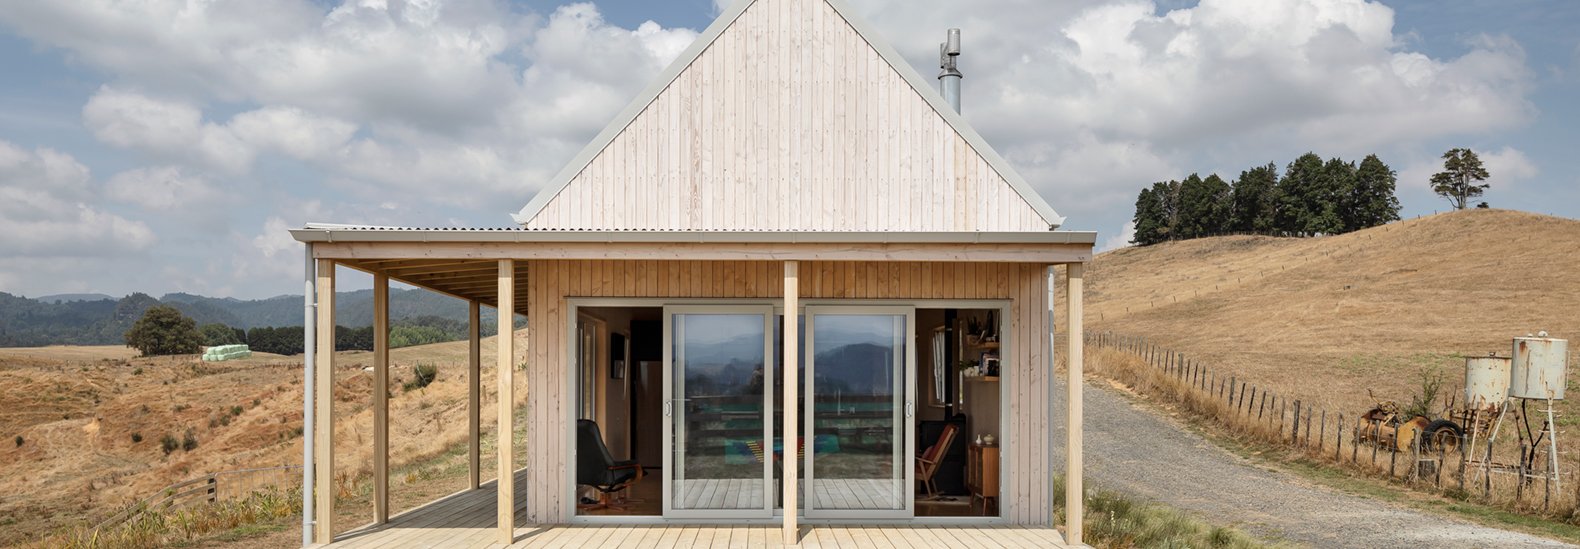 Container house - cover